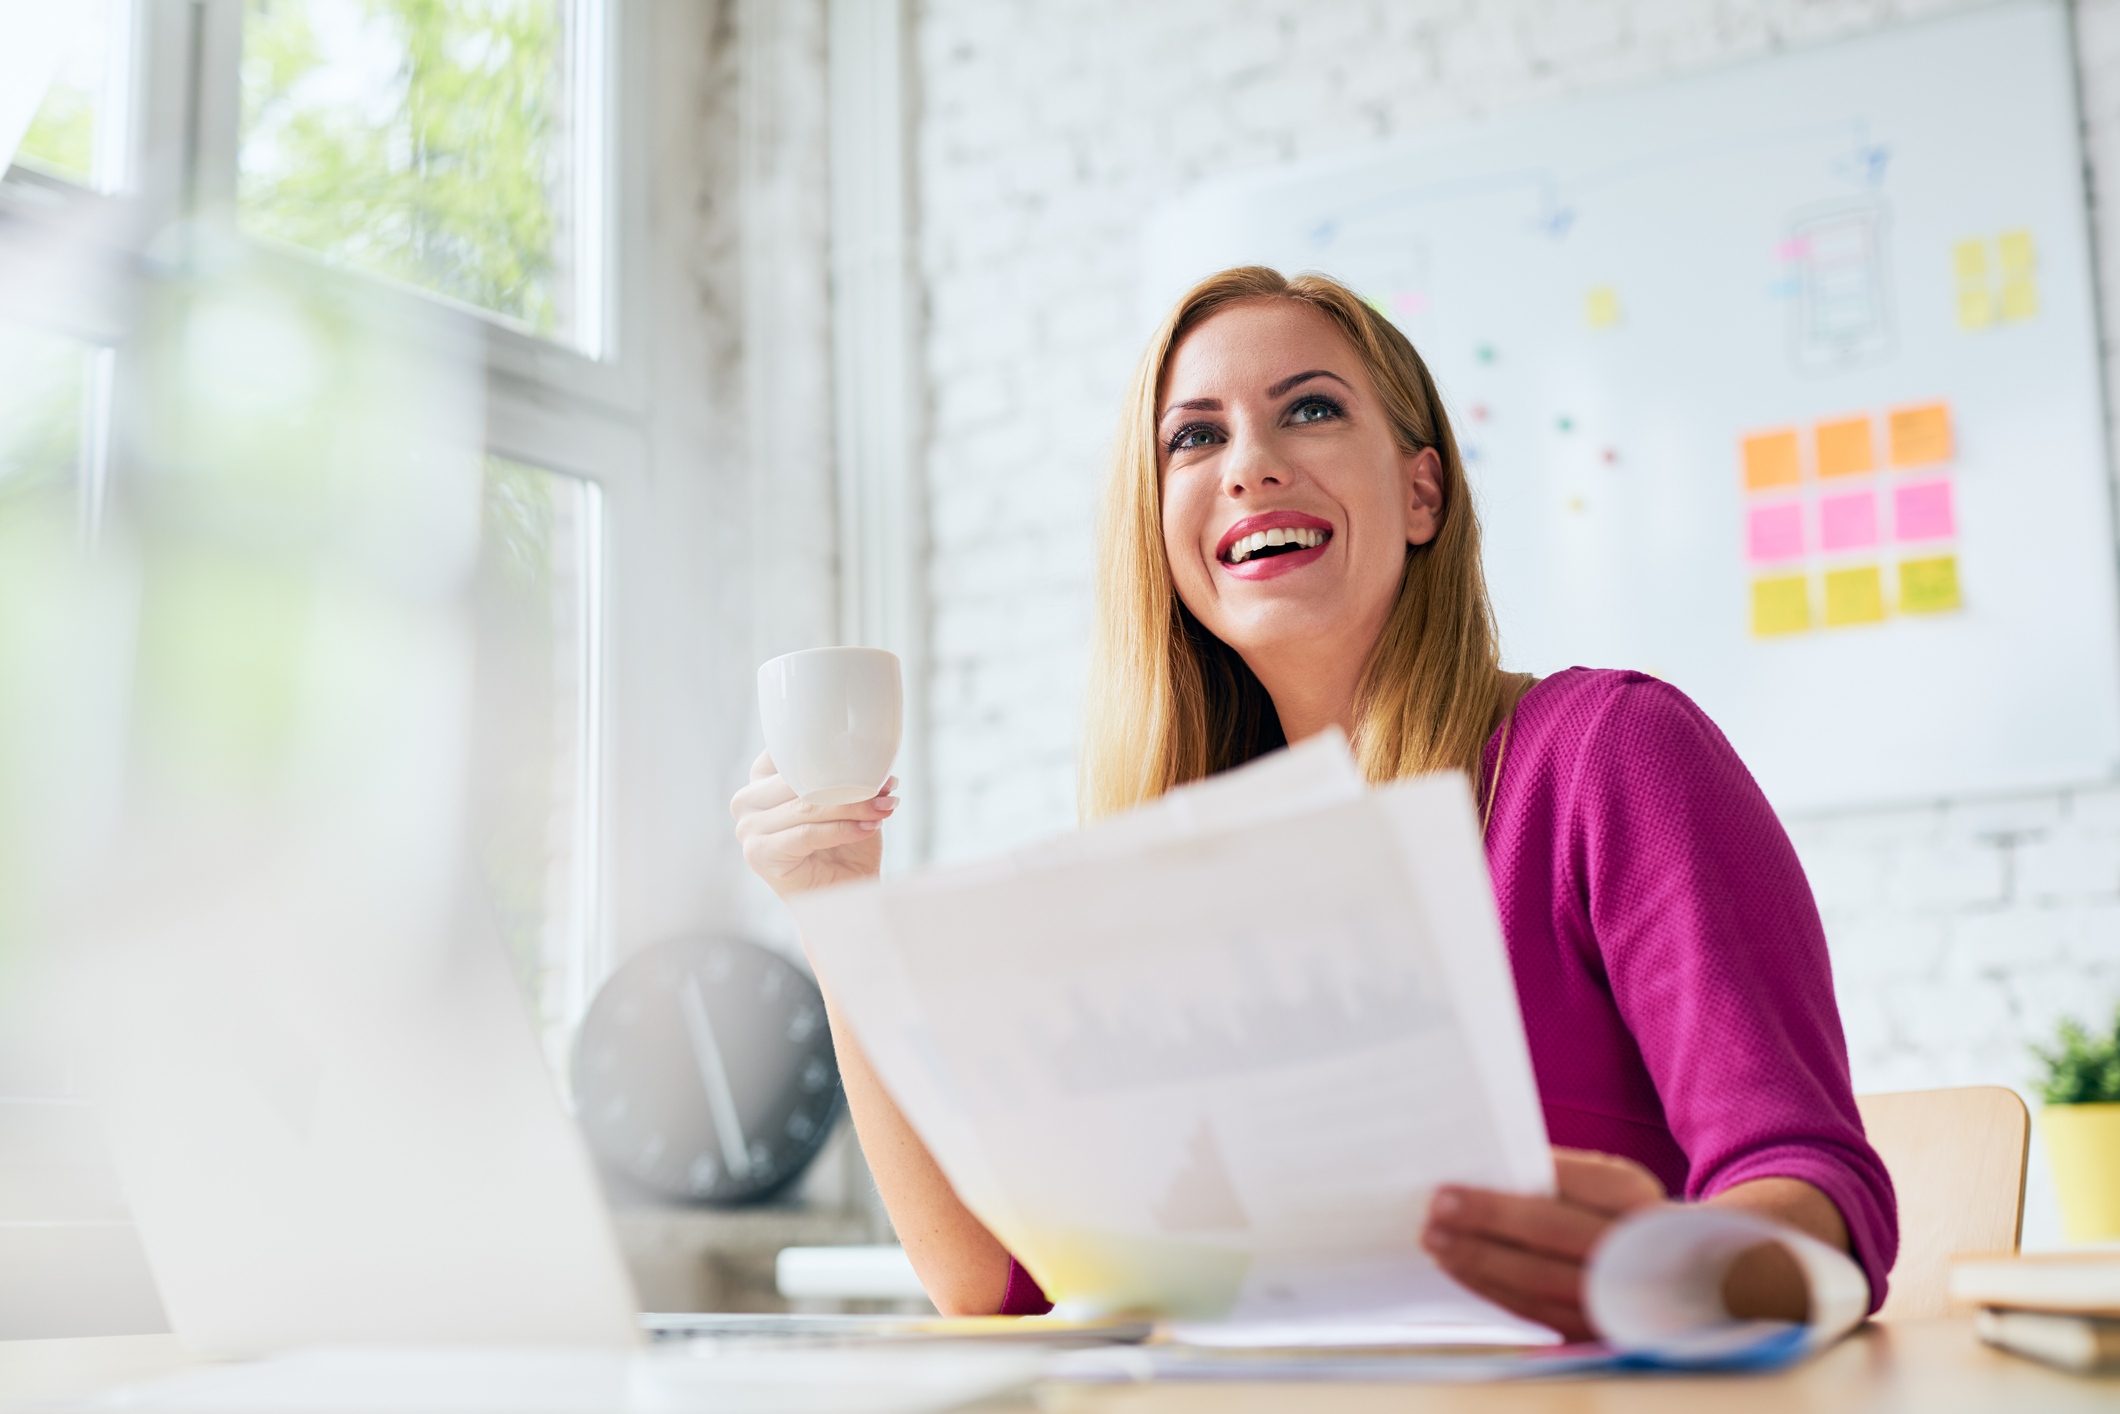 woman smiling while reviewing reports and drinking coffee